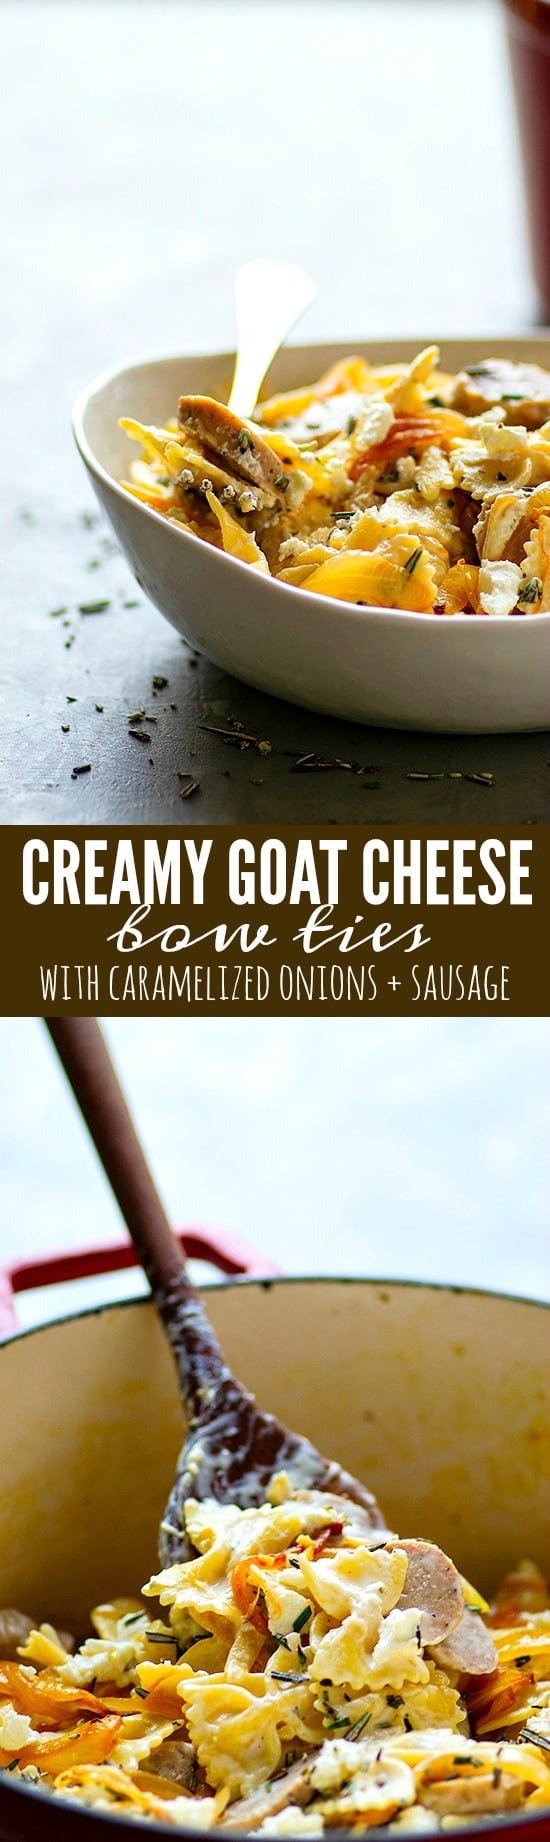 Creamy Goat Cheese Bow Ties - Ultra-creamy goat cheese bow ties packed with flavorful caramelized onions and sausage is the perfect pasta dish to put on the table when you want to shake up your pasta dinner game!